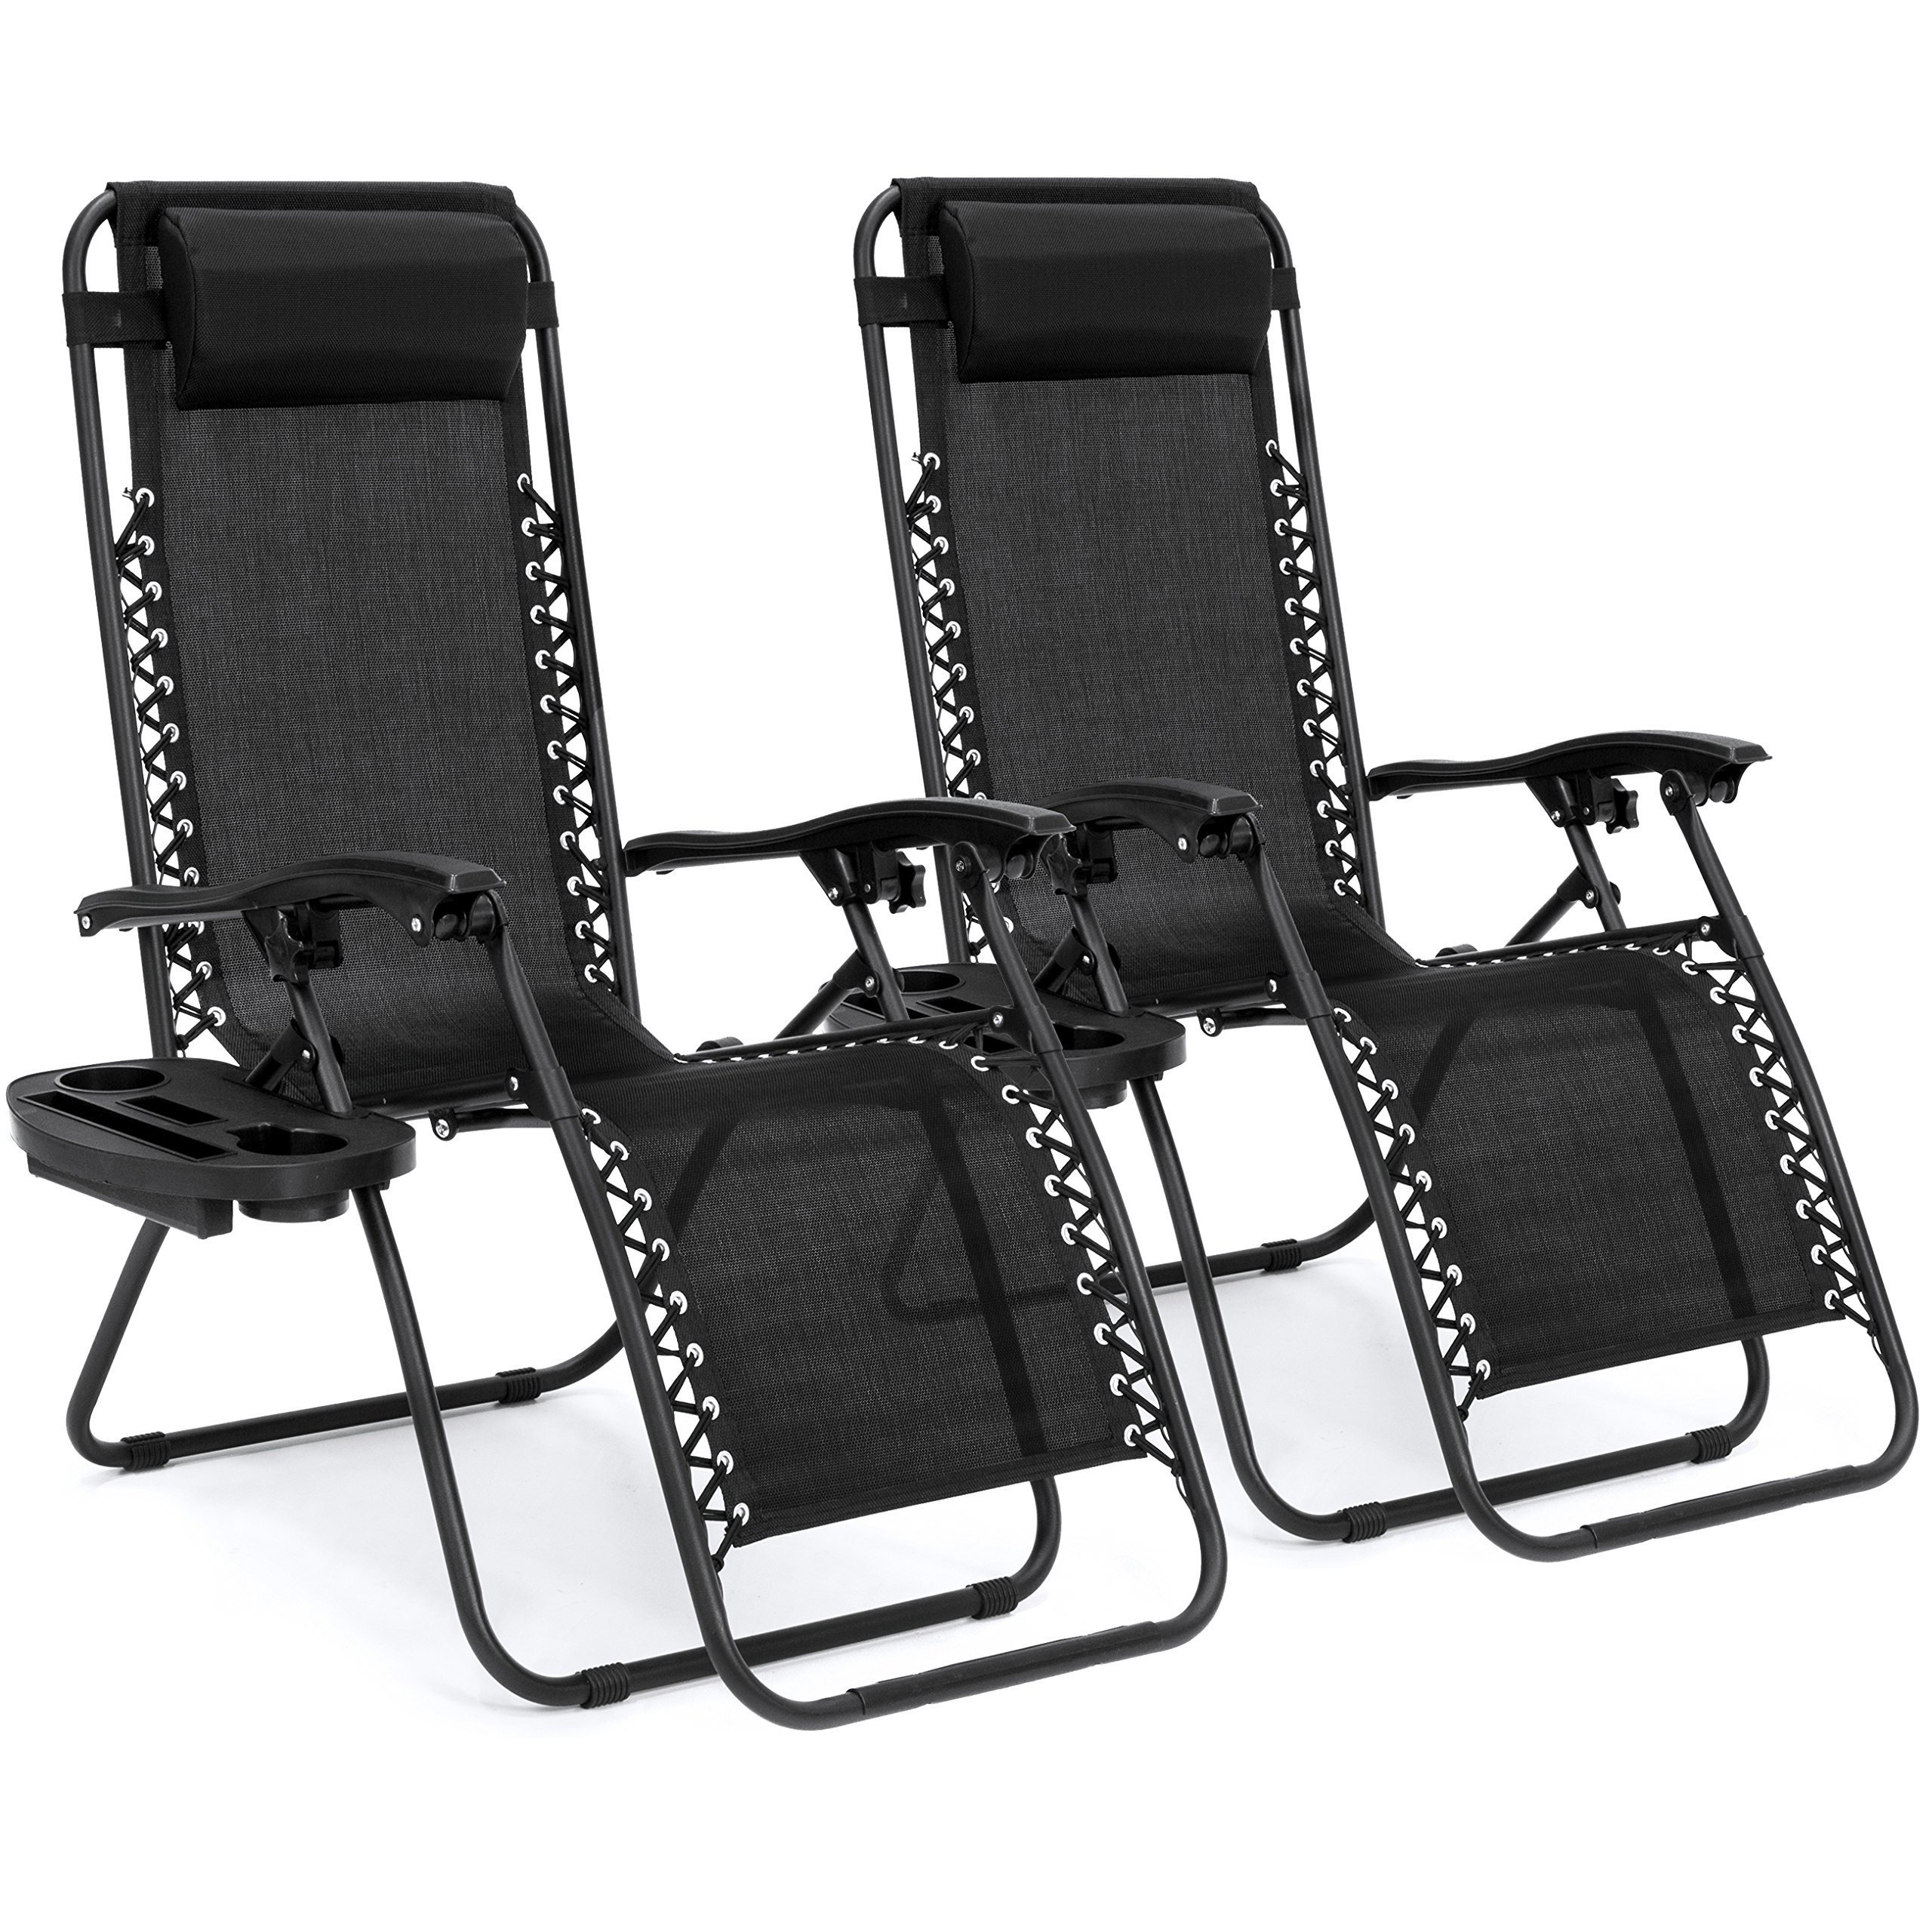 Best Choice Products Set of 2 Adjustable Zero Gravity Lounge Chair Recliners for Patio, Pool w/Cup Holders - Black